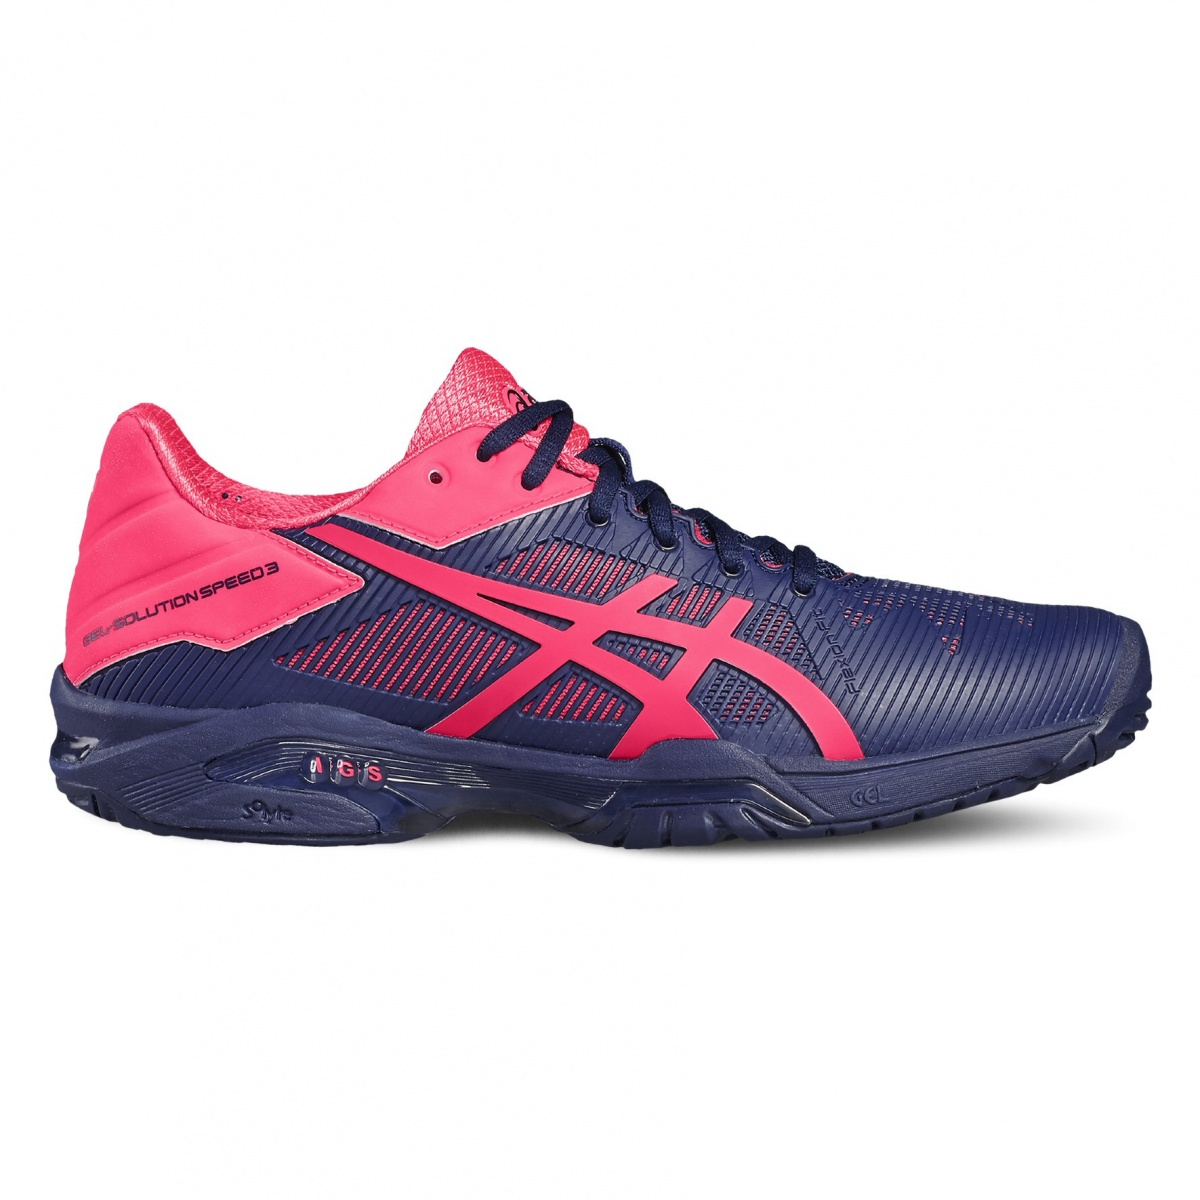 asics gel solution speed 3 allcourt 2017 indigo pink tennisschuhe damen online bestellen. Black Bedroom Furniture Sets. Home Design Ideas